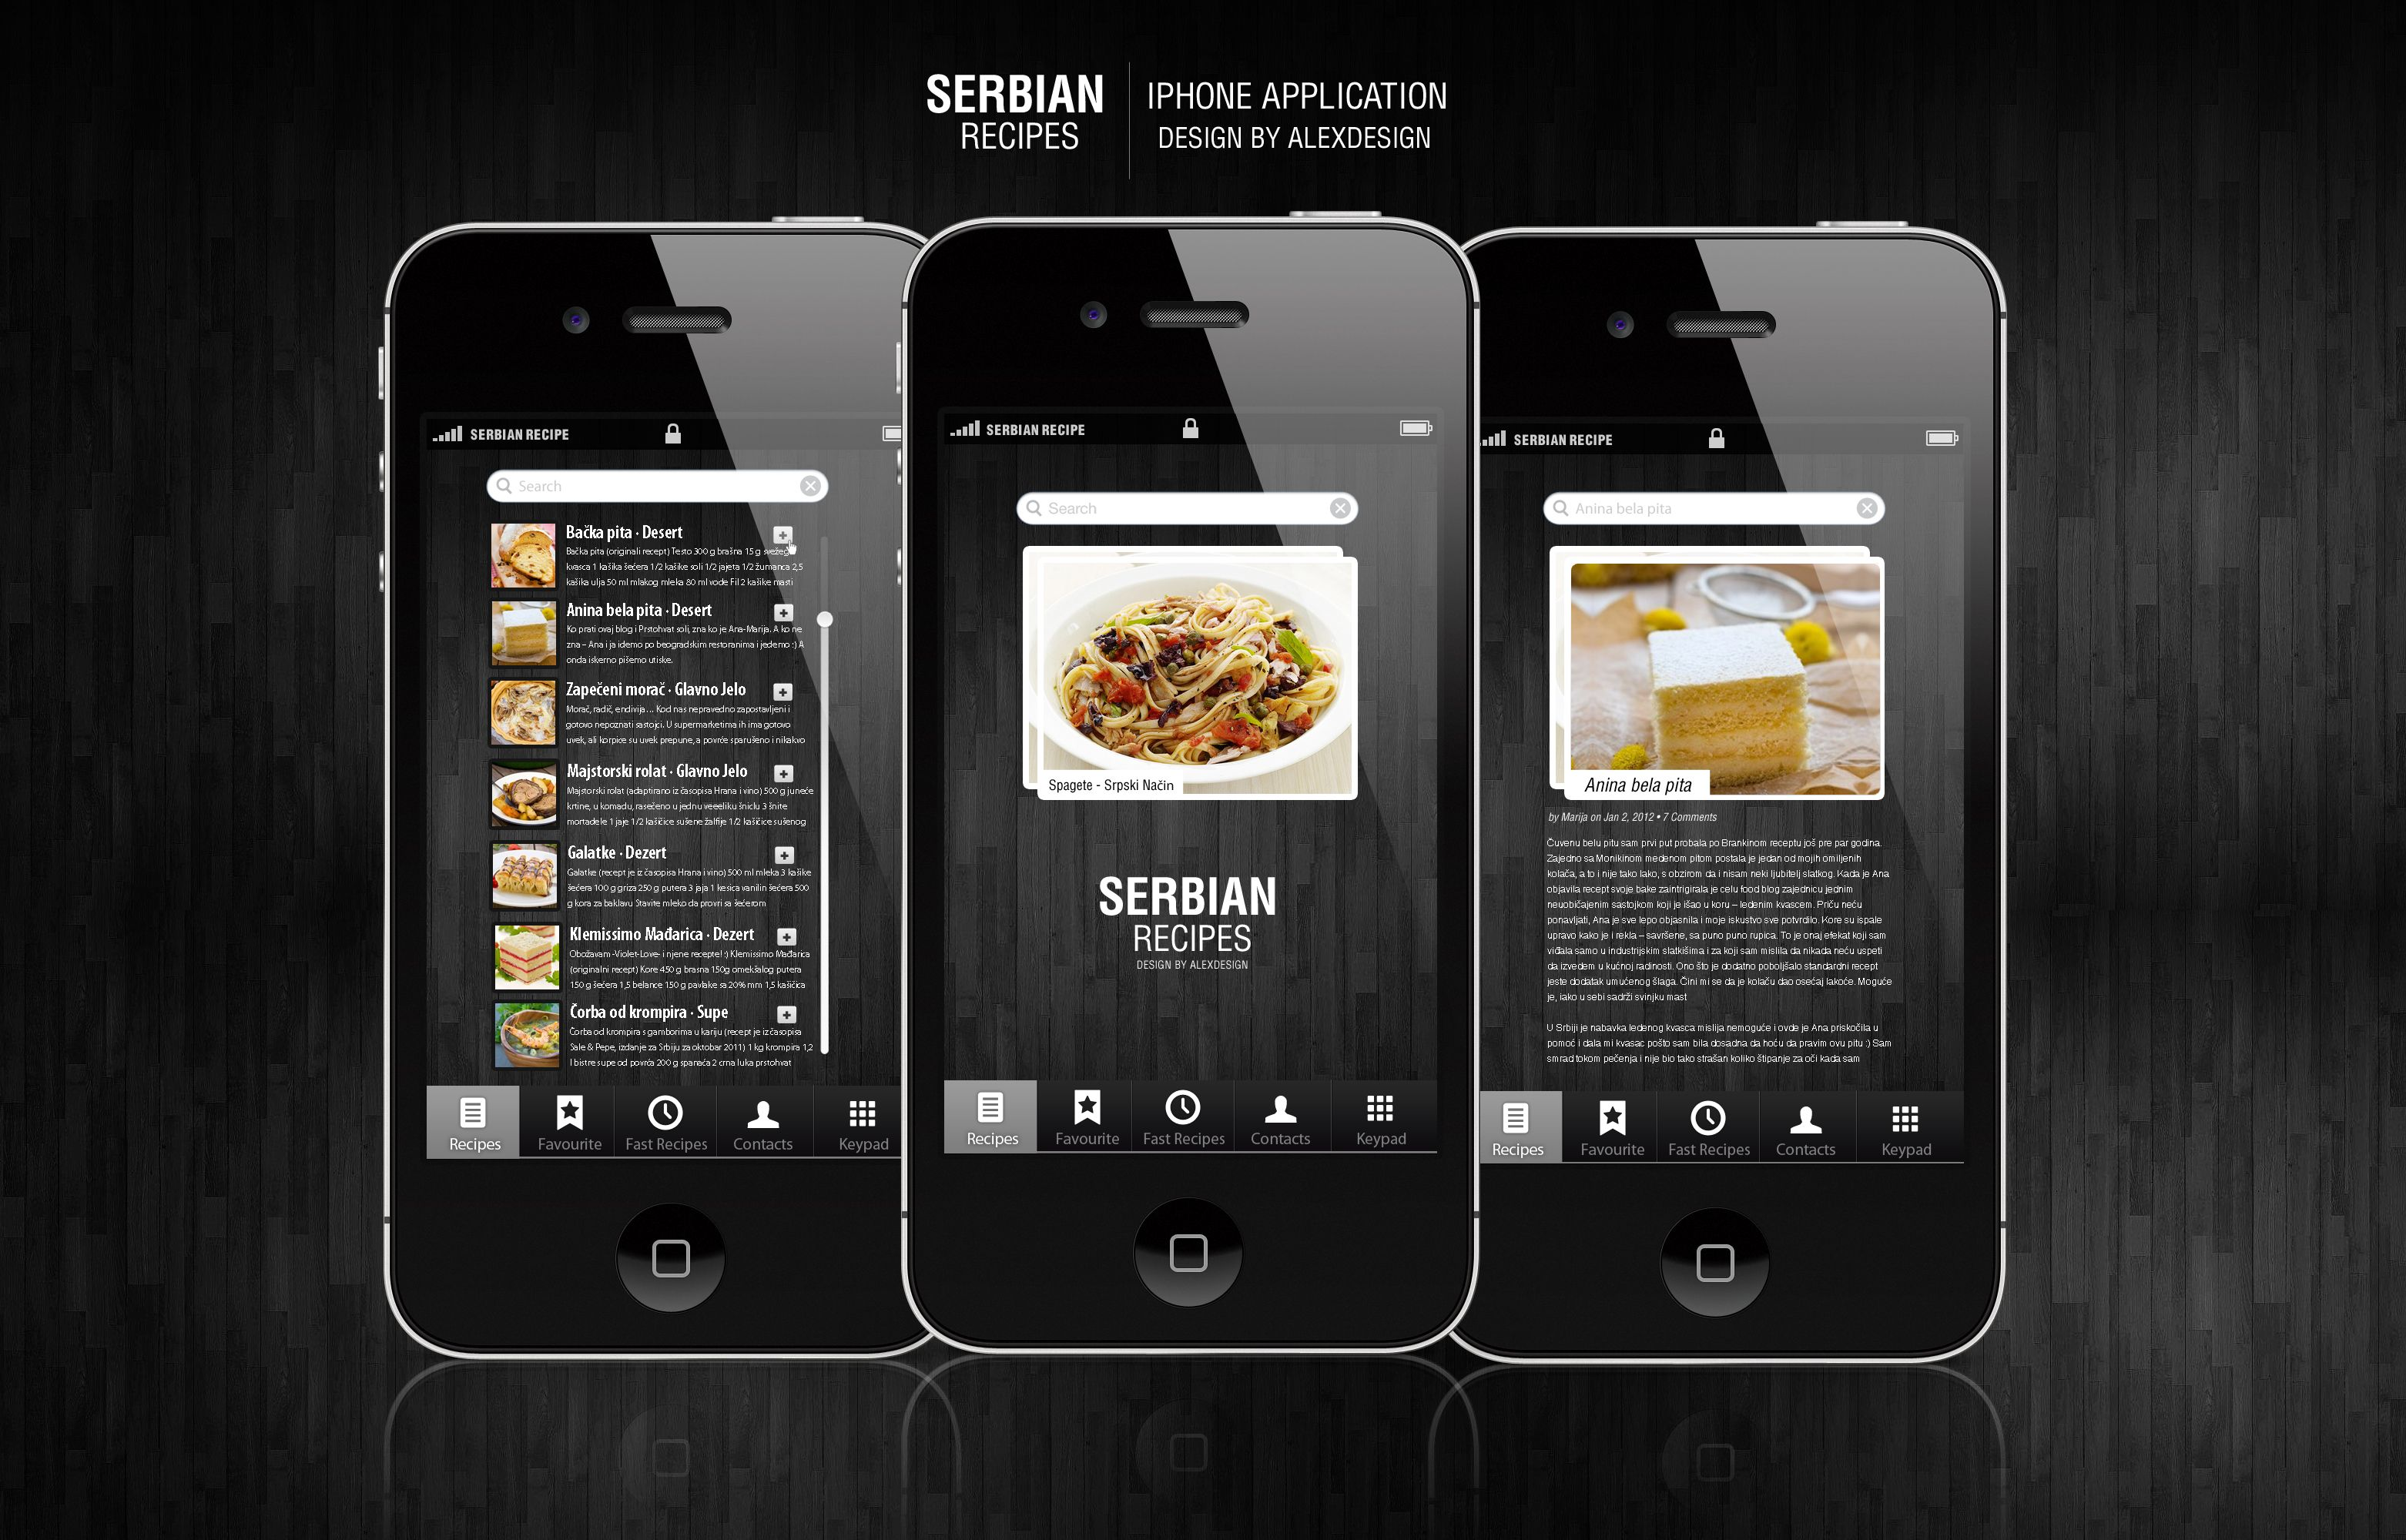 Serbian recipes iphone application by vasiligfx on deviantart app serbian recipes iphone application by vasiligfx on deviantart forumfinder Images